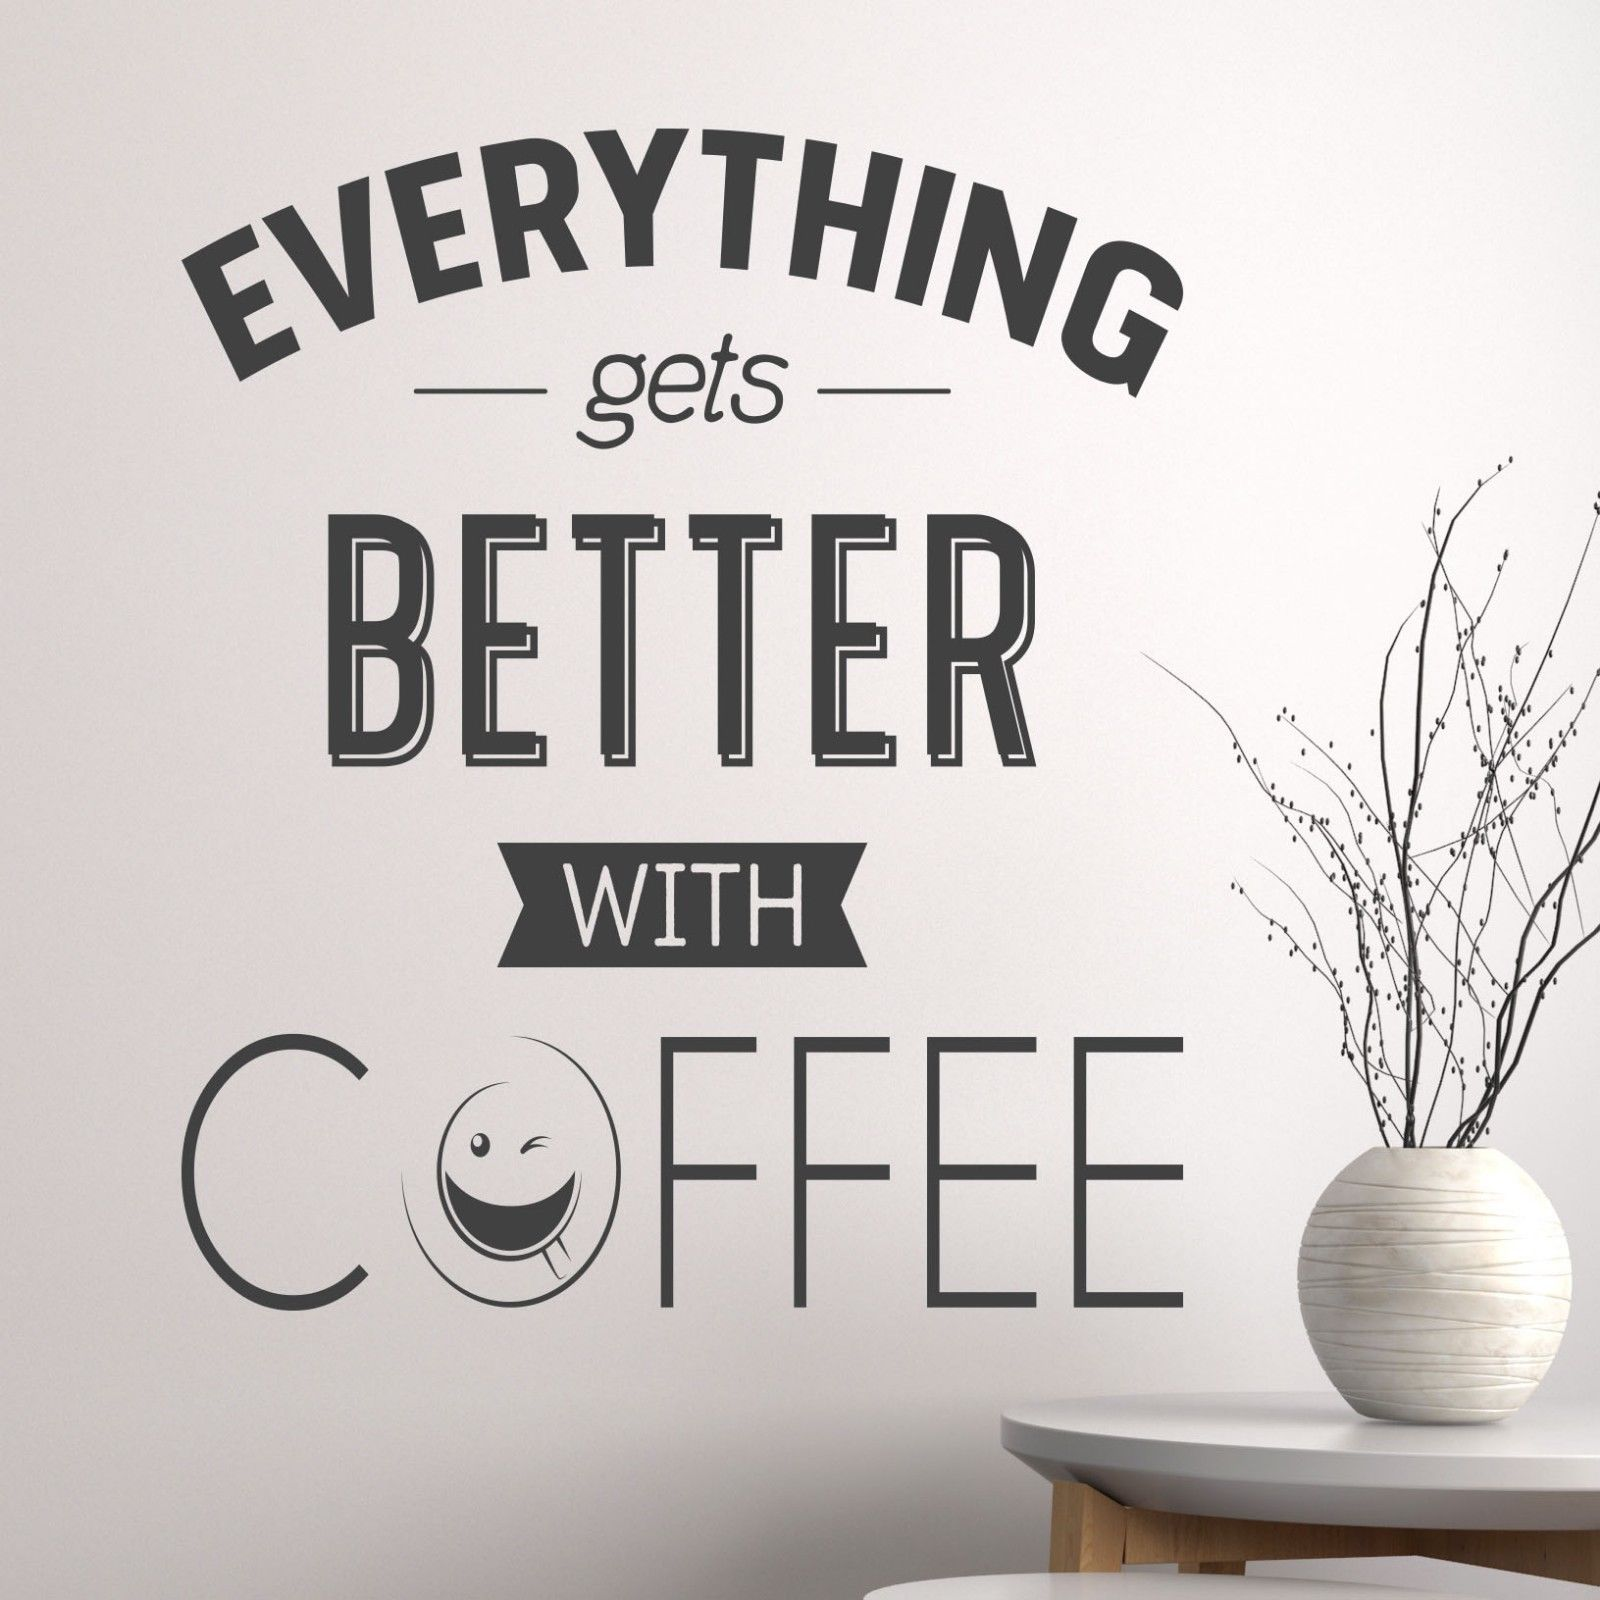 Wall Sticker Application Everything Gets Better With Coffee Wall Sticker Vinyl